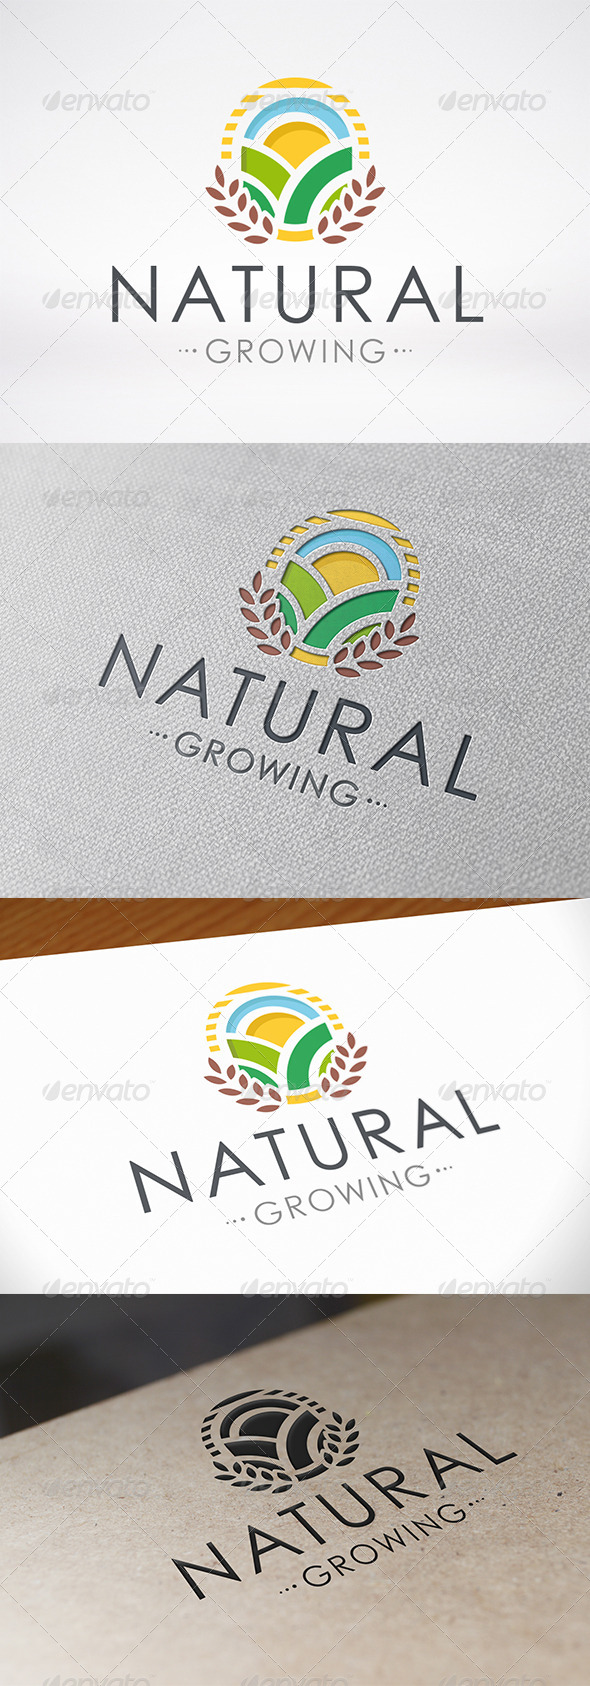 GraphicRiver Natural Growing Logo 6796316